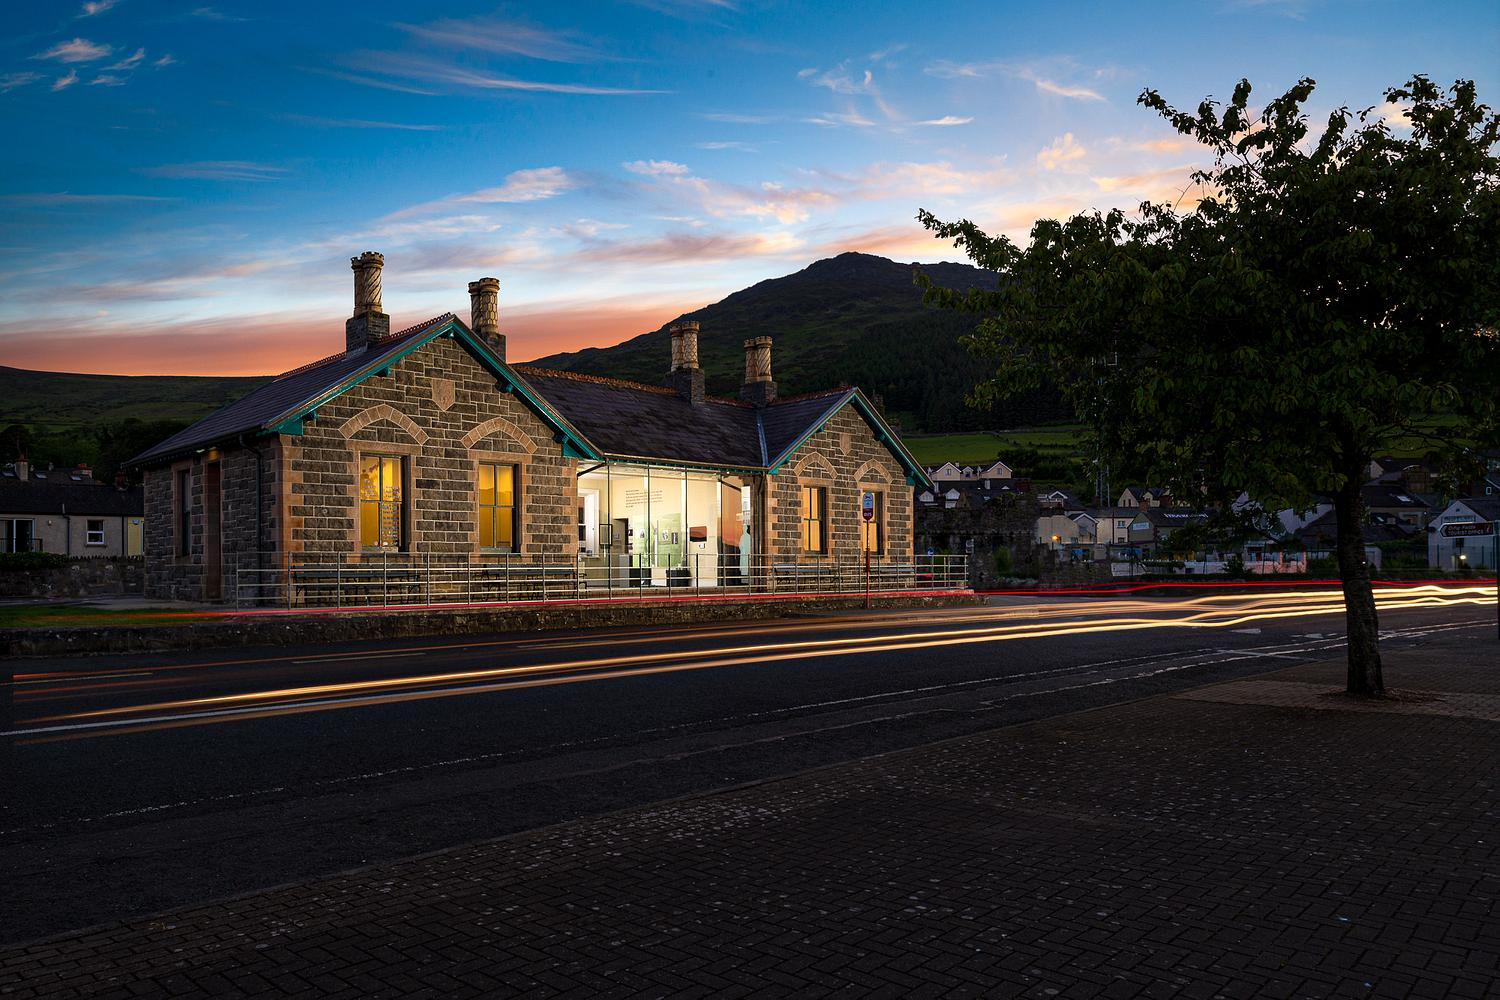 The Station House, Carlingford, Co. Louth